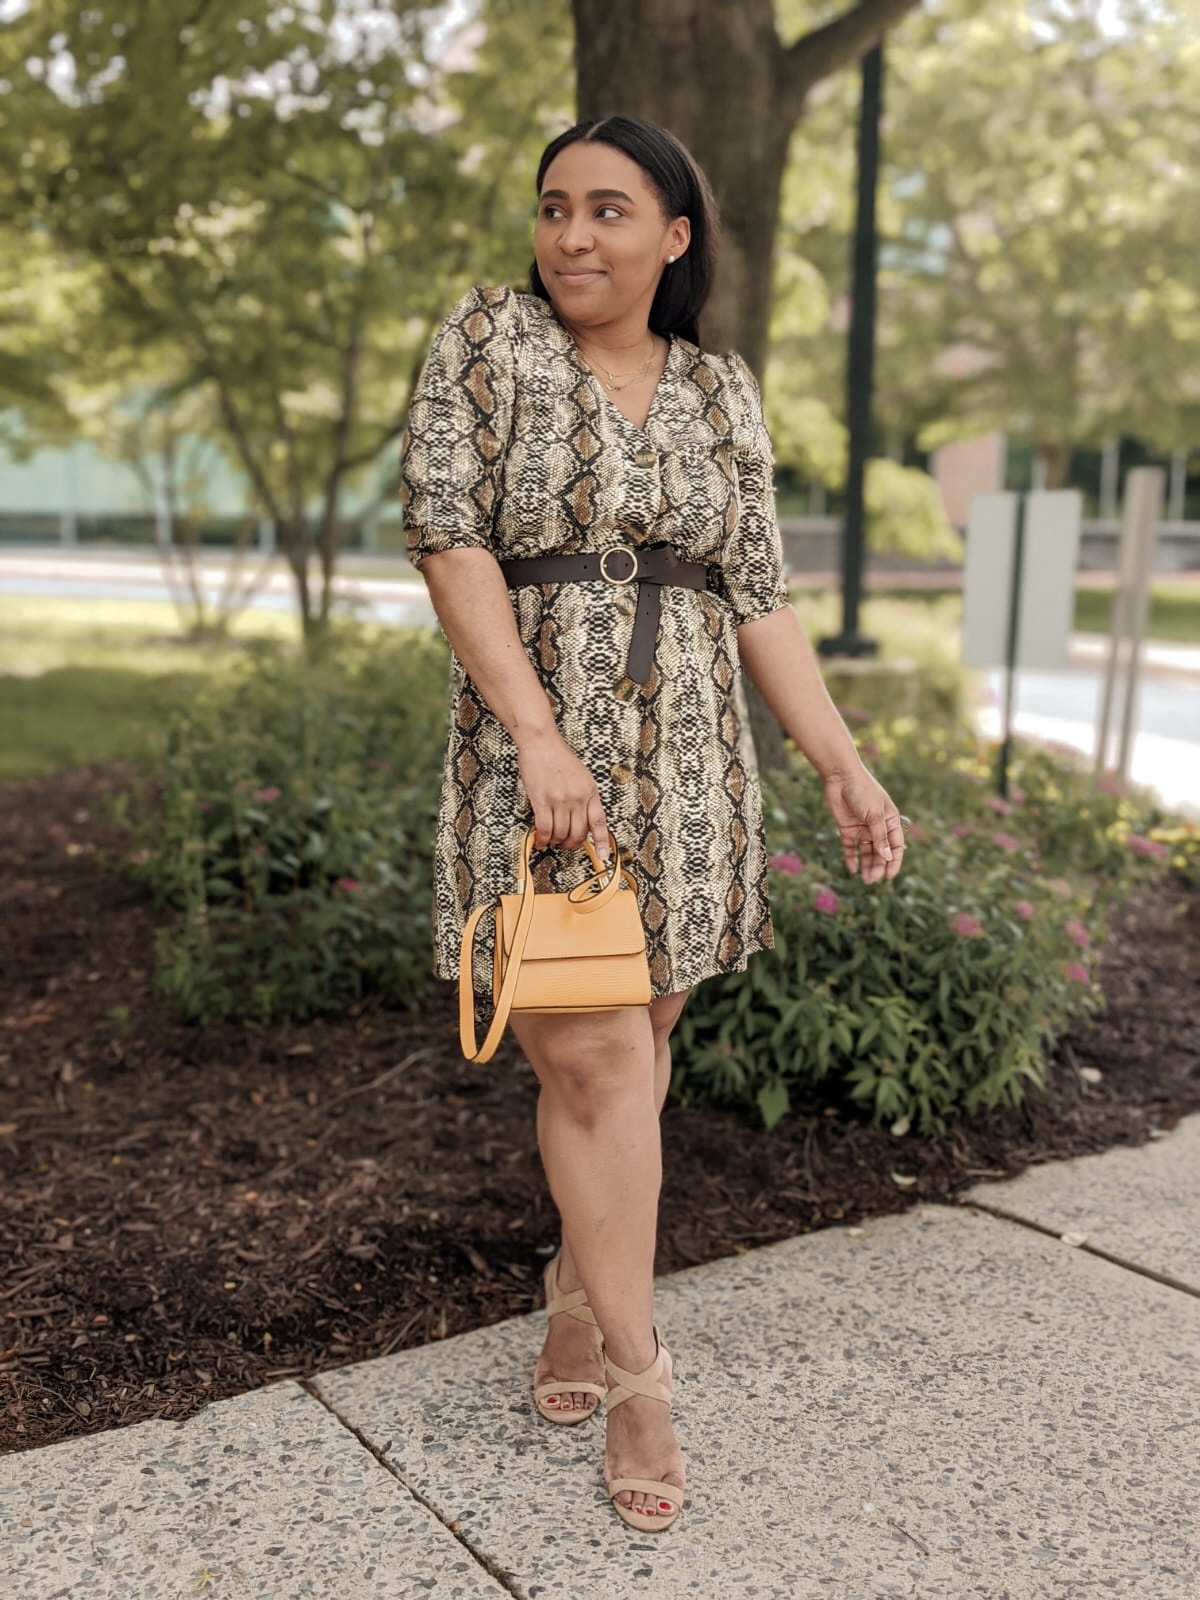 dress lilly, printed dress, snake print dress, how to style animal print, different ways to wear animal print, pattys kloset, summer outfit ideas, summer dresses